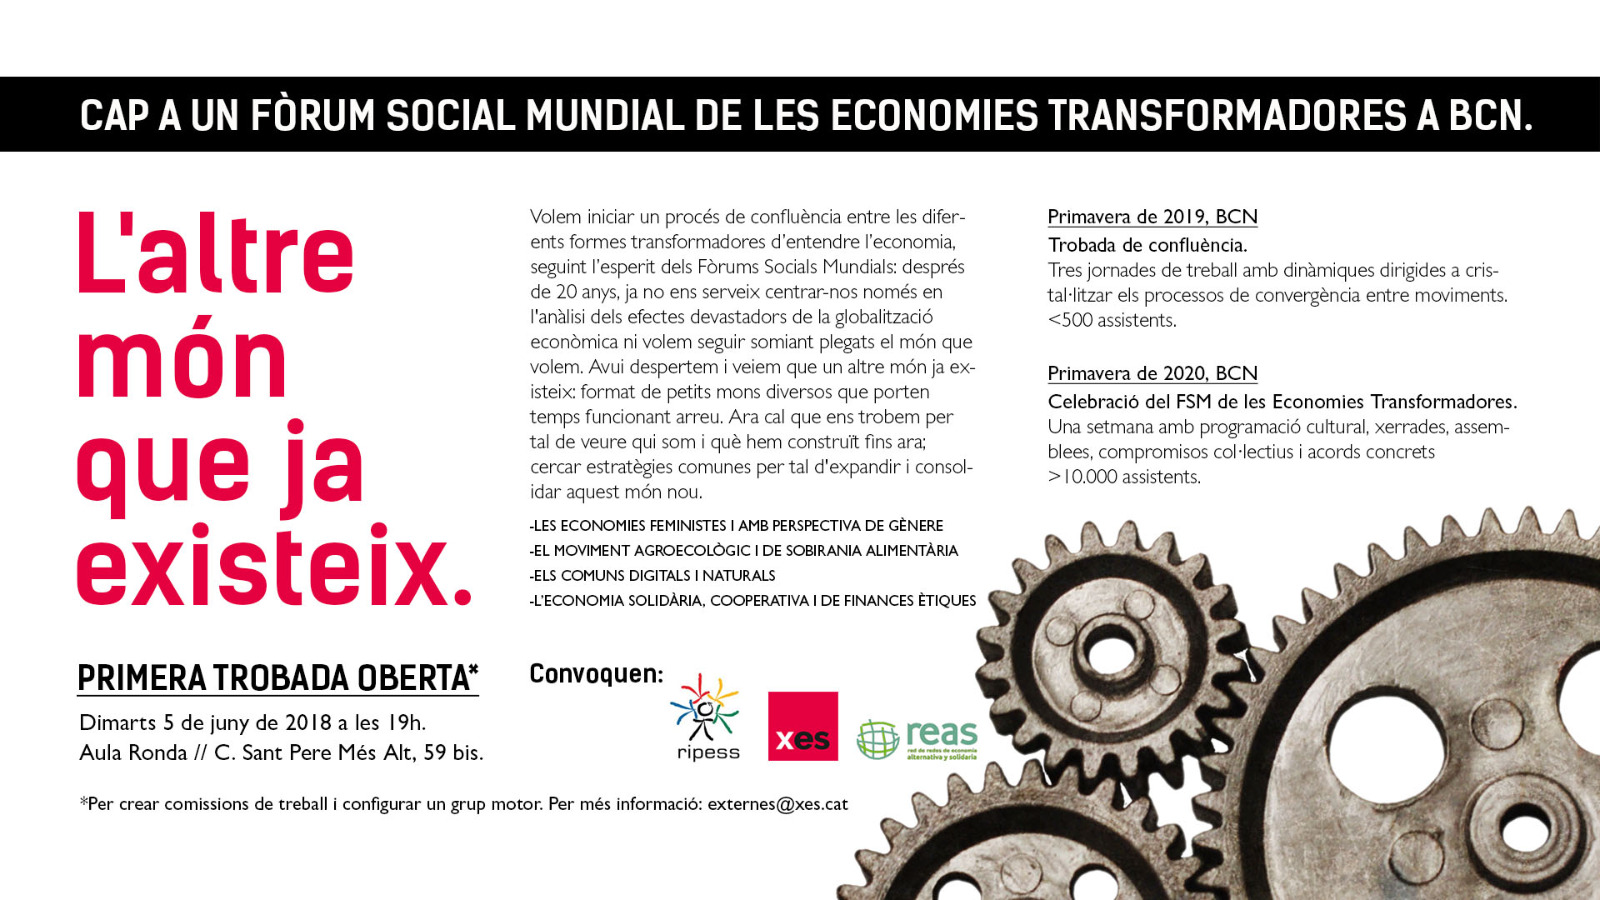 Cap a un Fòrum Social Mundial de les economies transformadores a Barcelona